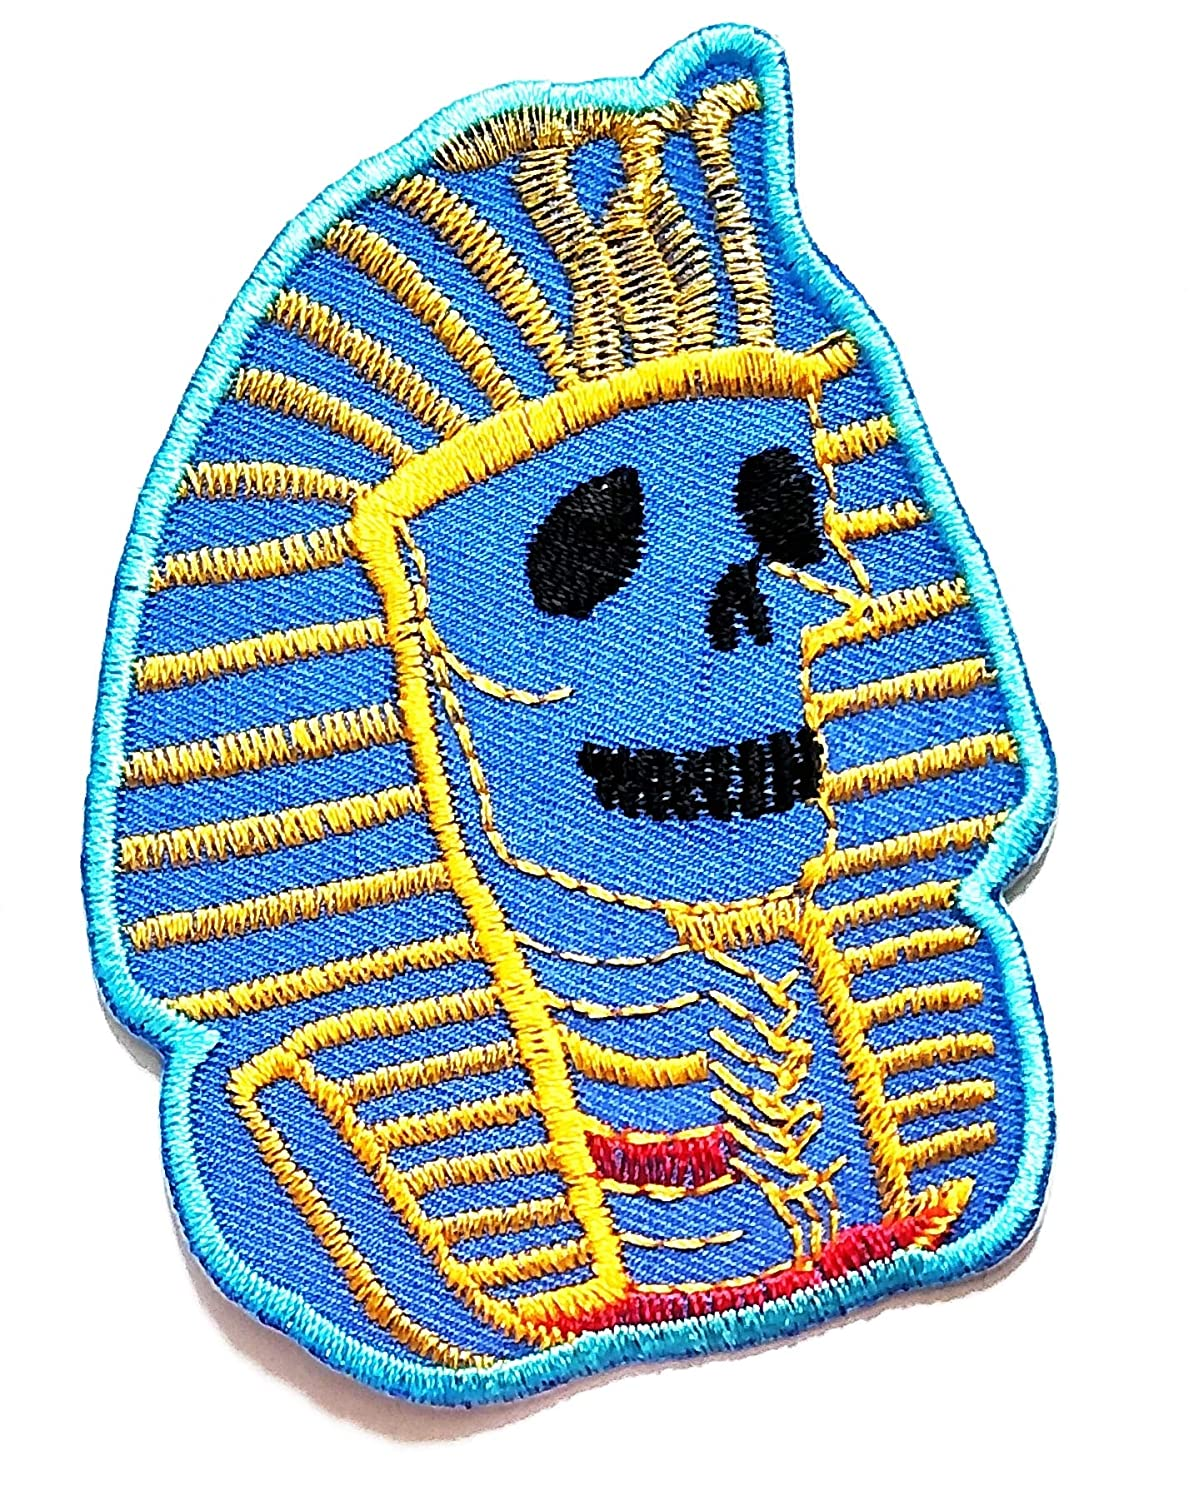 2.6'' X 3.5'' Pyramid Skull Blue Egyptian Style Skull Cartoon Kids Logo Jacket t-Shirt Jeans Polo Patch Iron on Embroidered Logo Sign Badge Comics Cartoon Patch by Tour les jours Shop